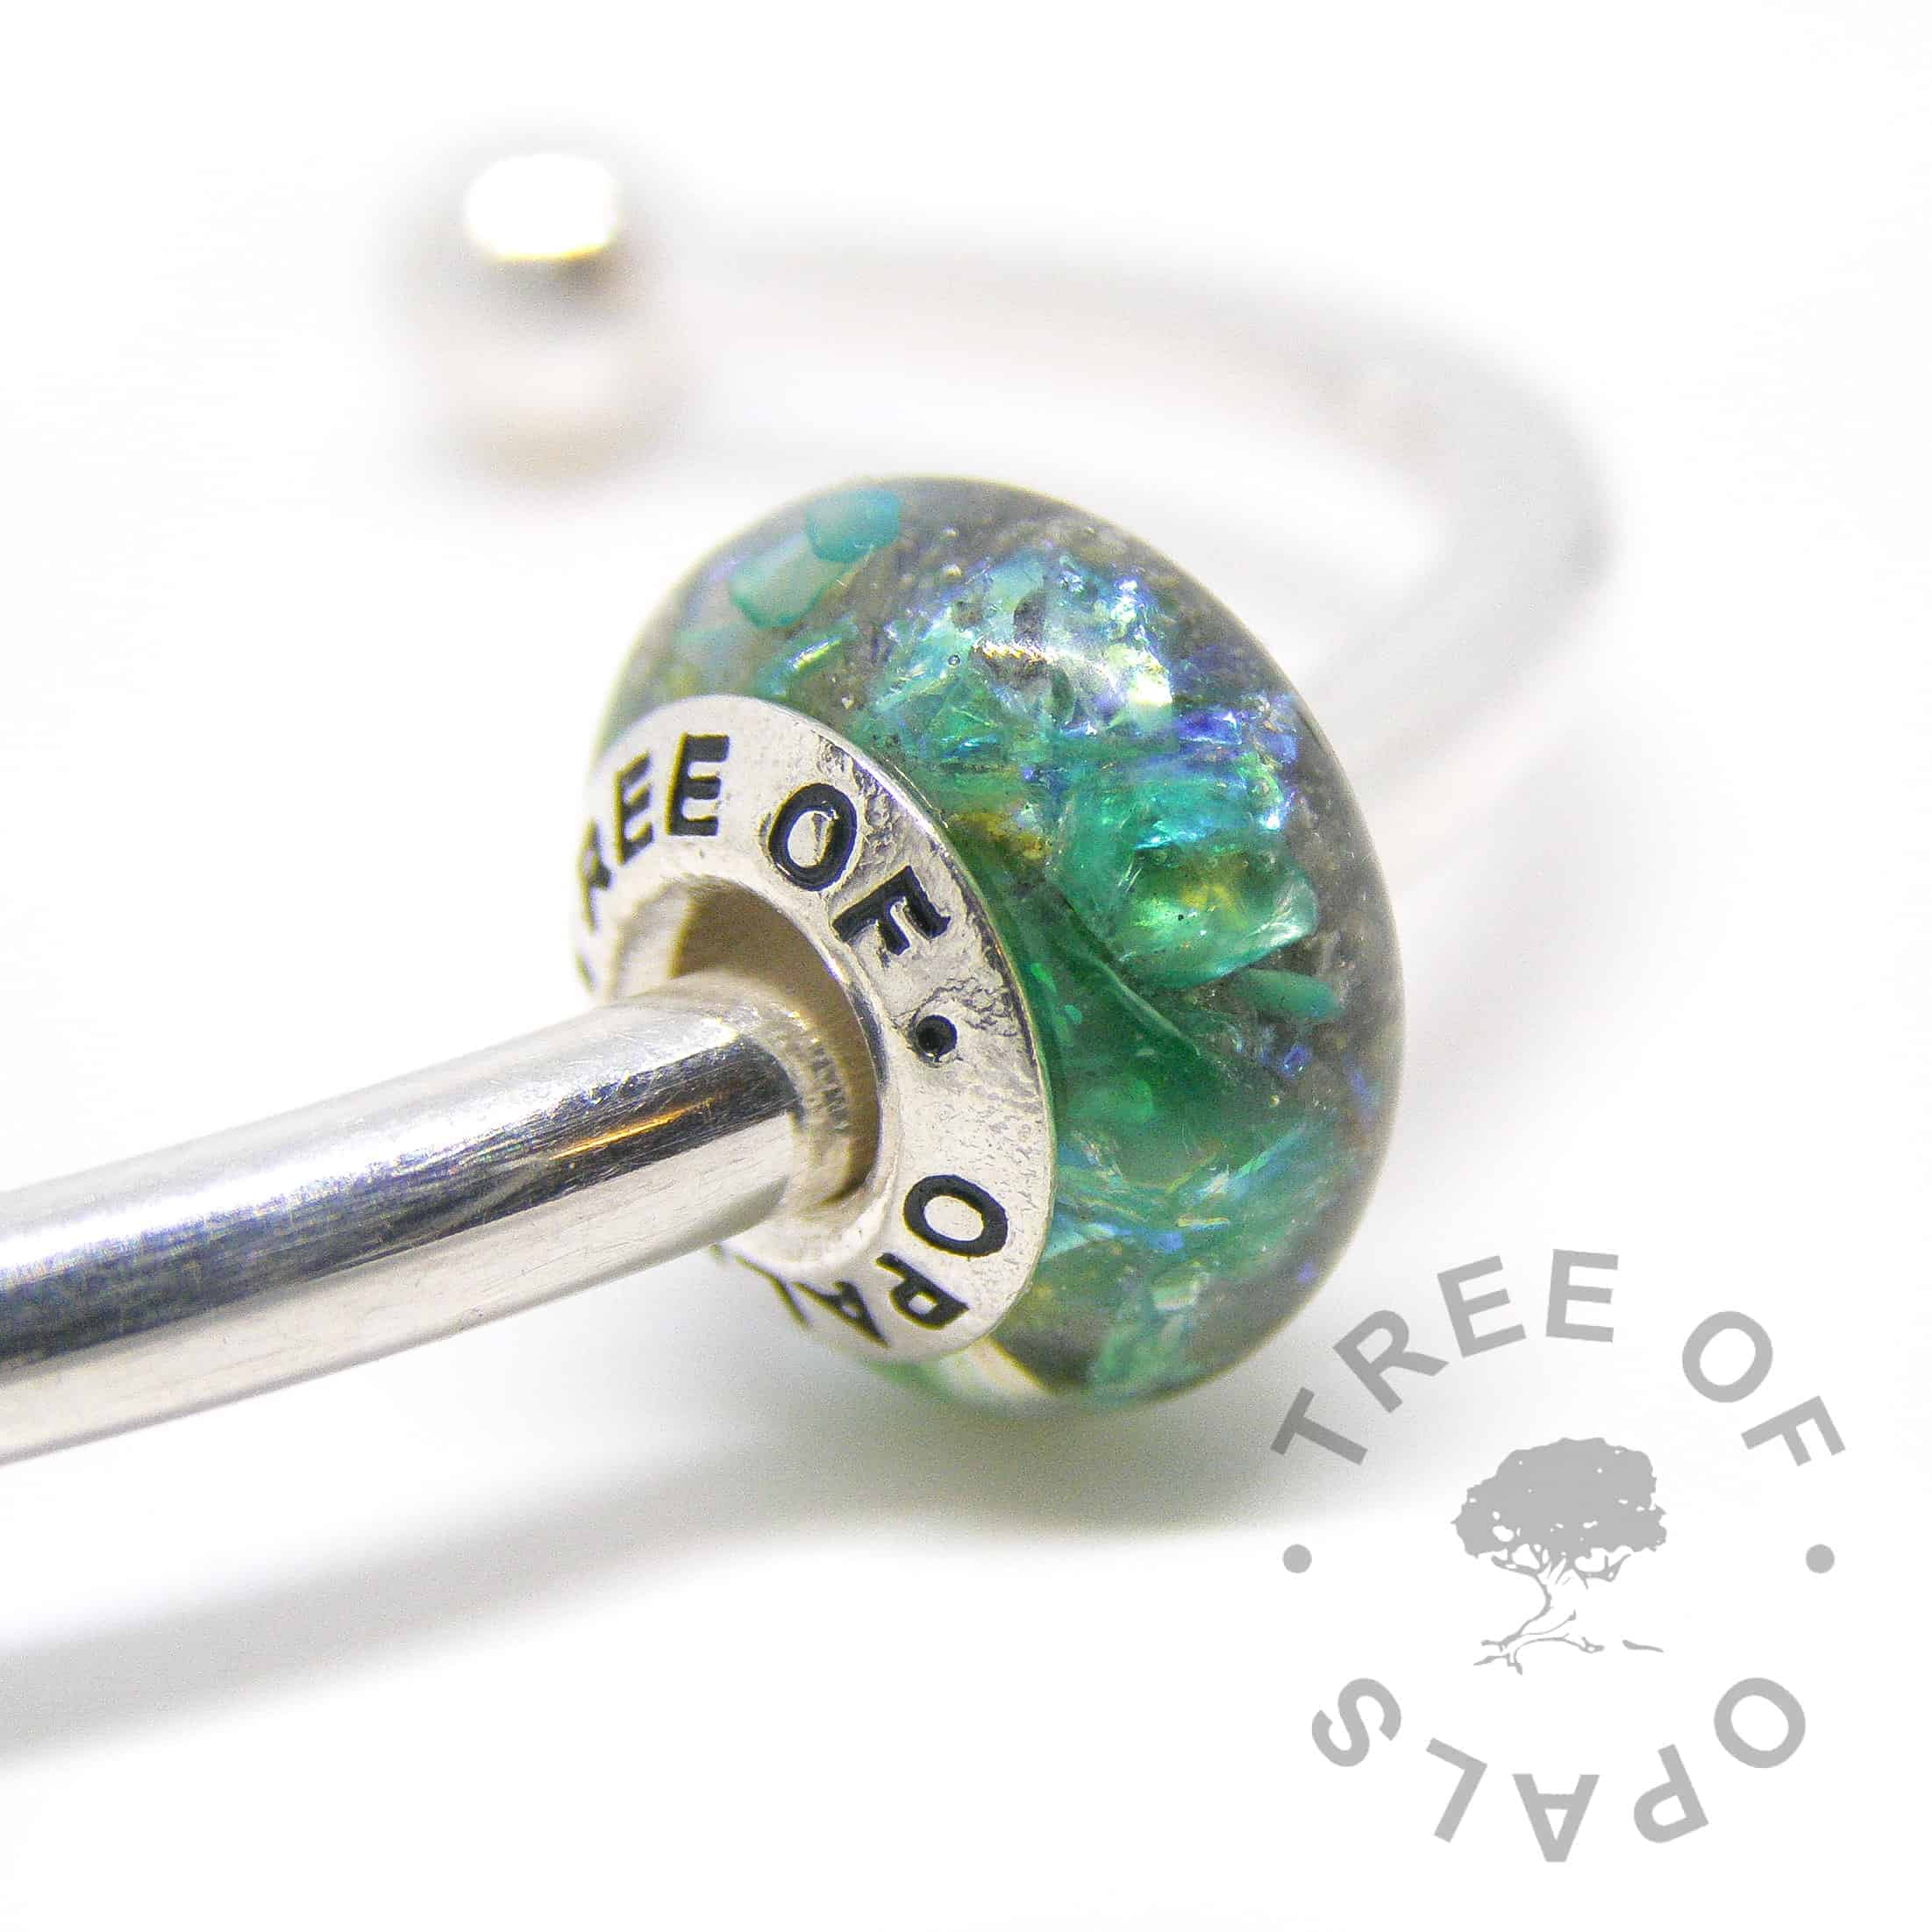 cremation ashes bead in resin, green opalescent and peridot August birthstone with a solid sterling silver Tree of Opals branded core cremation ash charm